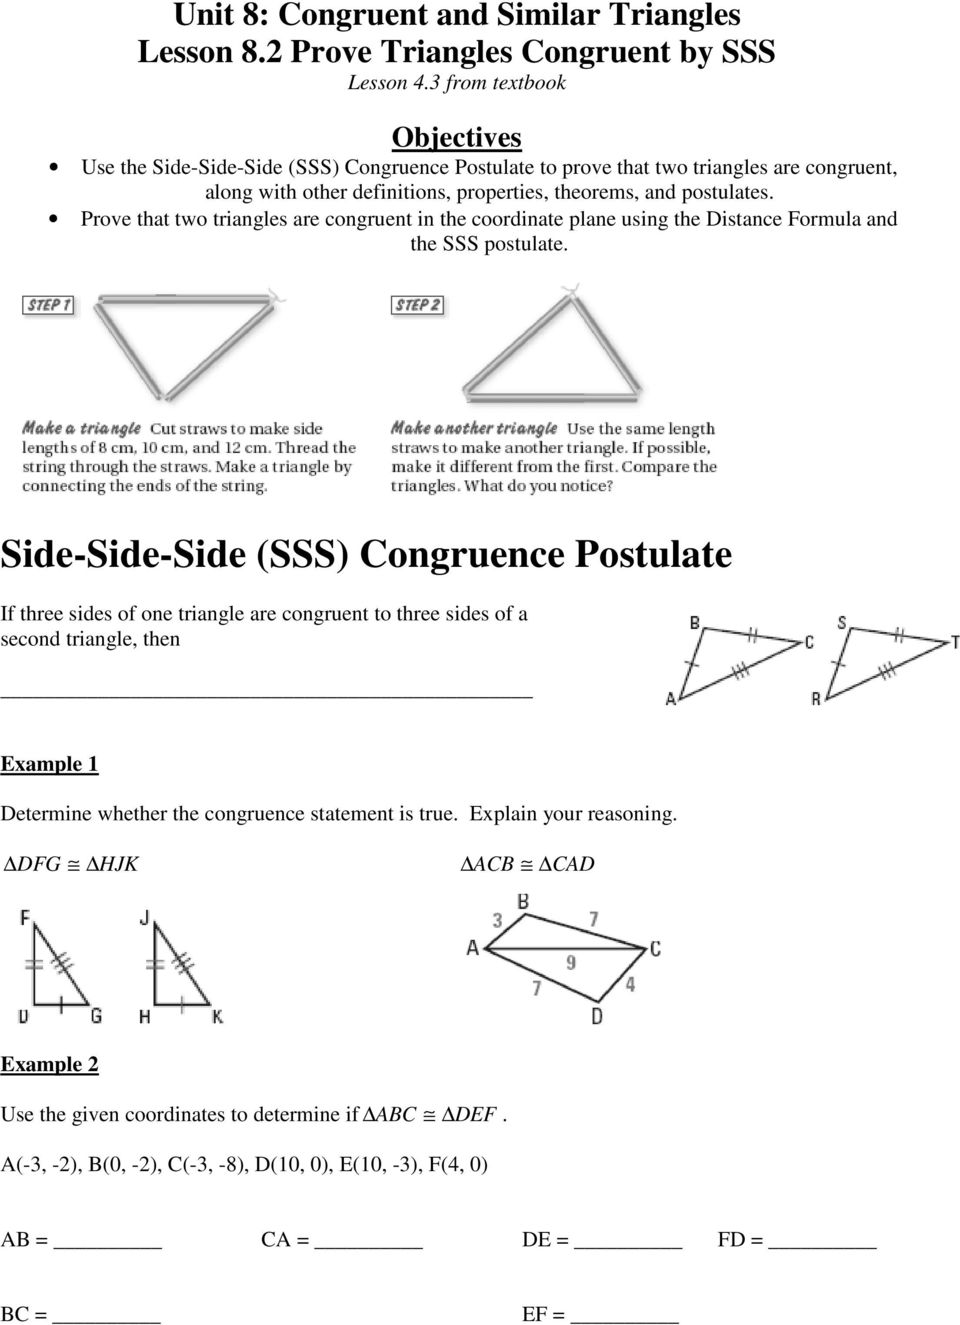 Prove that two triangles are congruent in the coordinate plane using the Distance Formula and the SSS postulate.